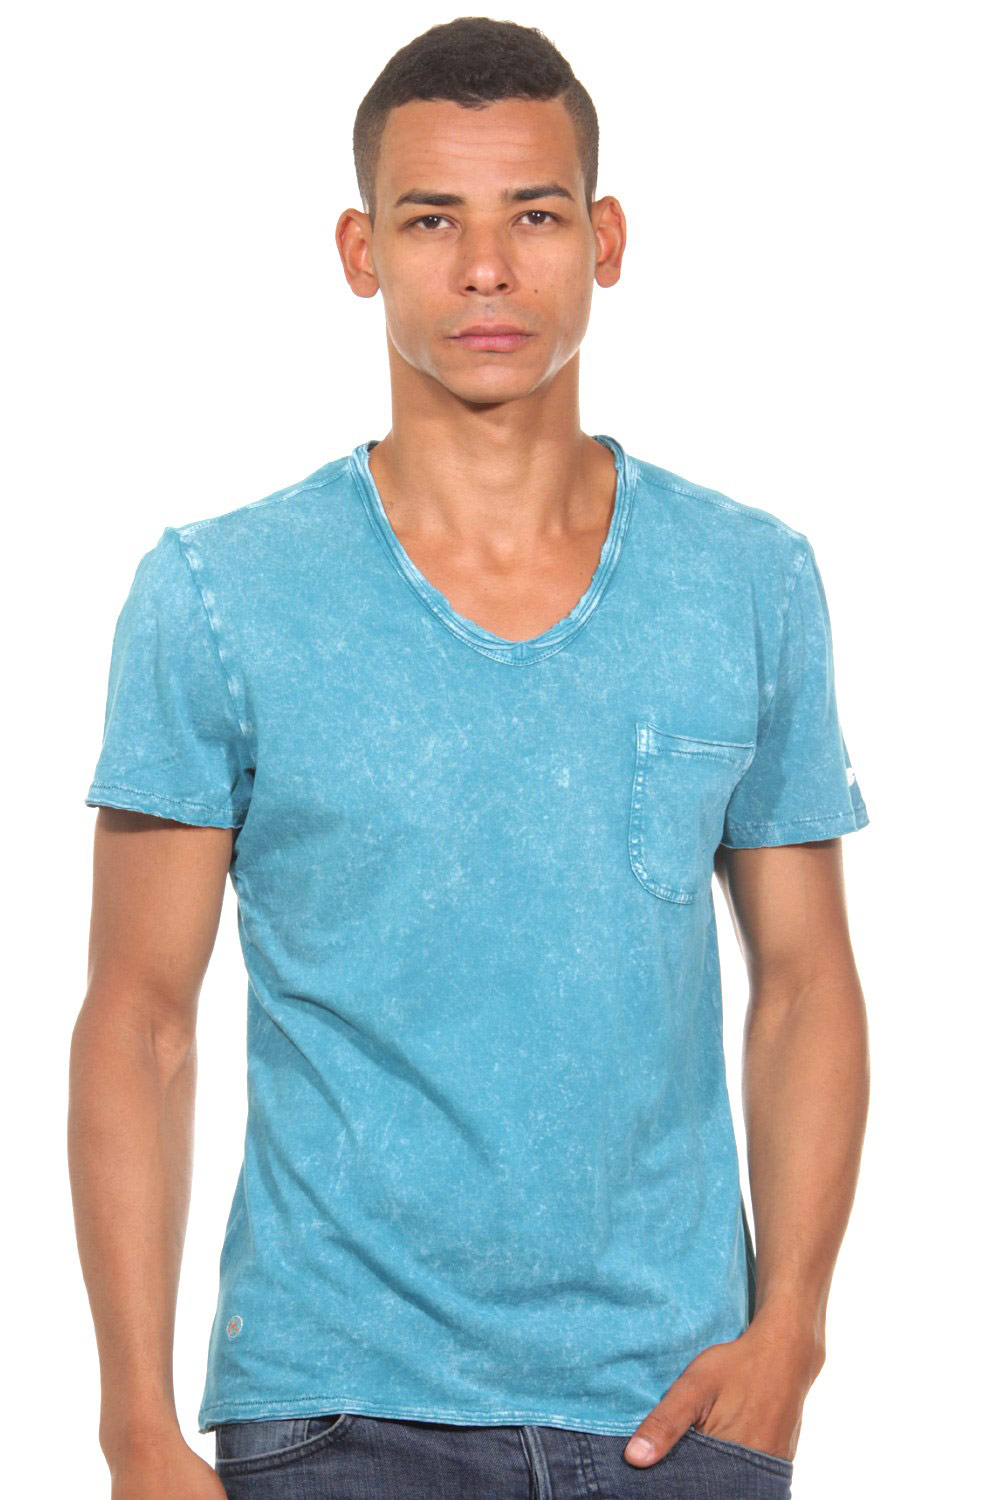 TOM TAILOR POLO TEAM T-Shirt V-Ausschnitt slim fit auf oboy.de